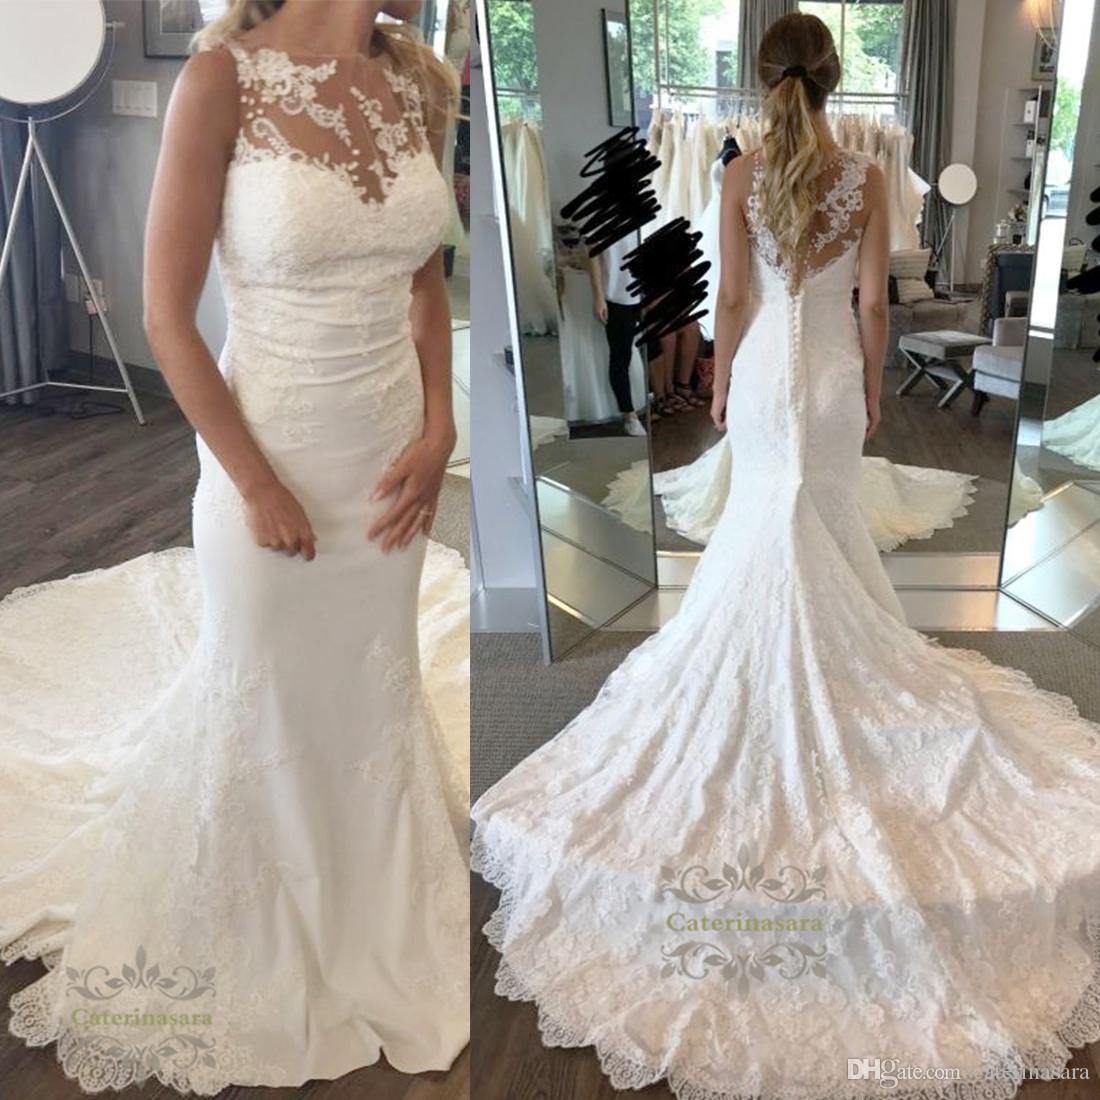 A Gorgeous Mermaid Style Wedding Dress With Enchanting Floral Lace ...